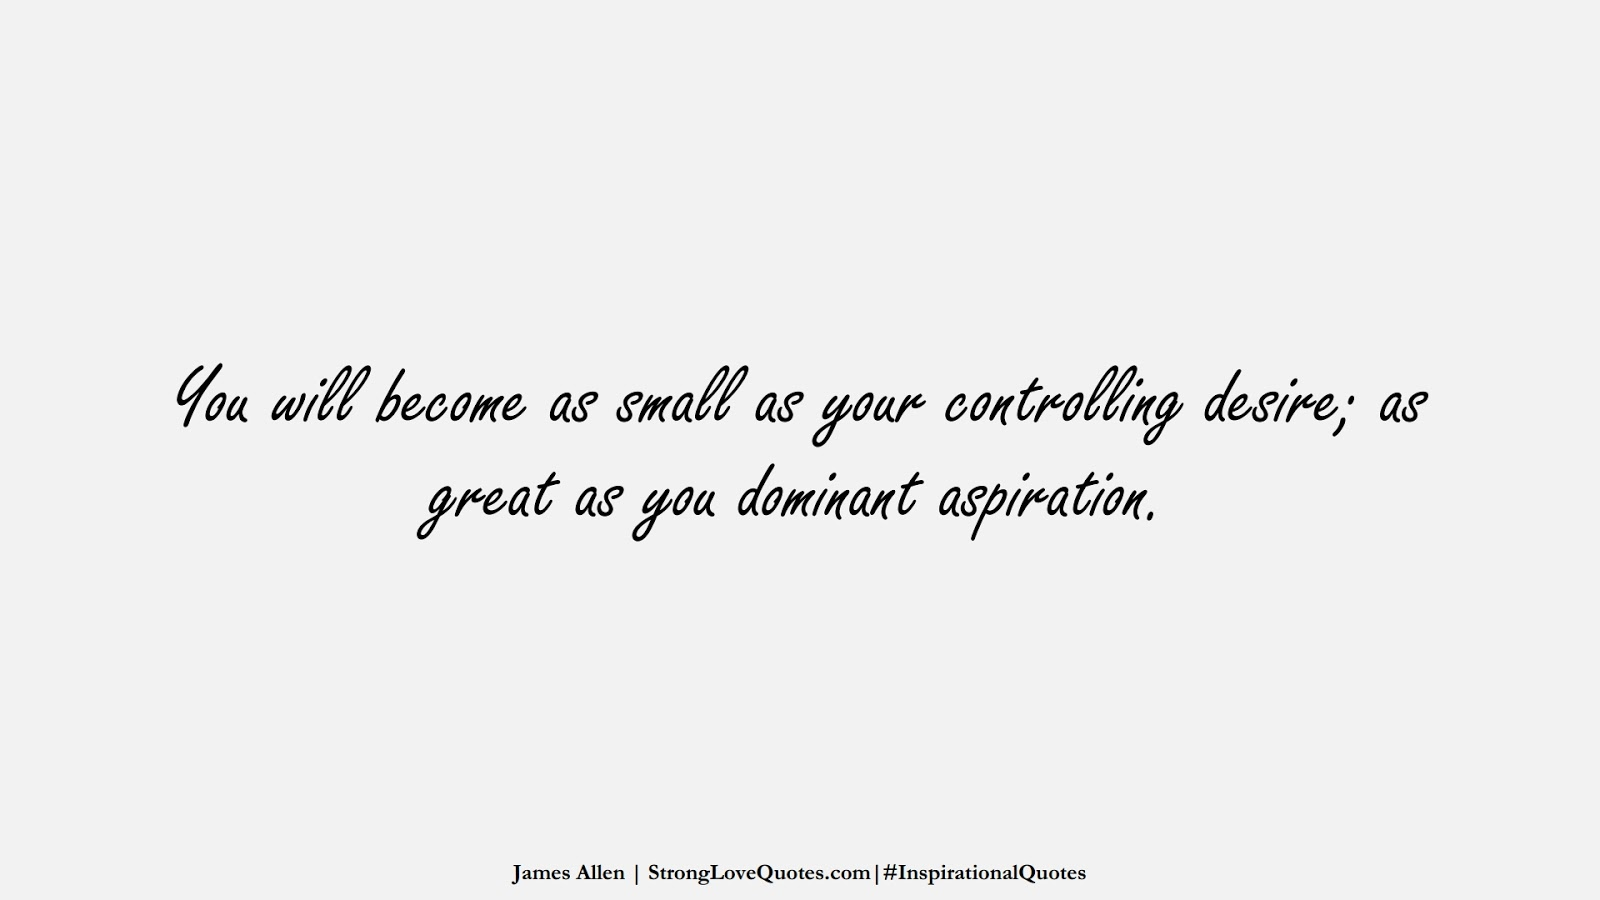 You will become as small as your controlling desire; as great as you dominant aspiration. (James Allen);  #InspirationalQuotes